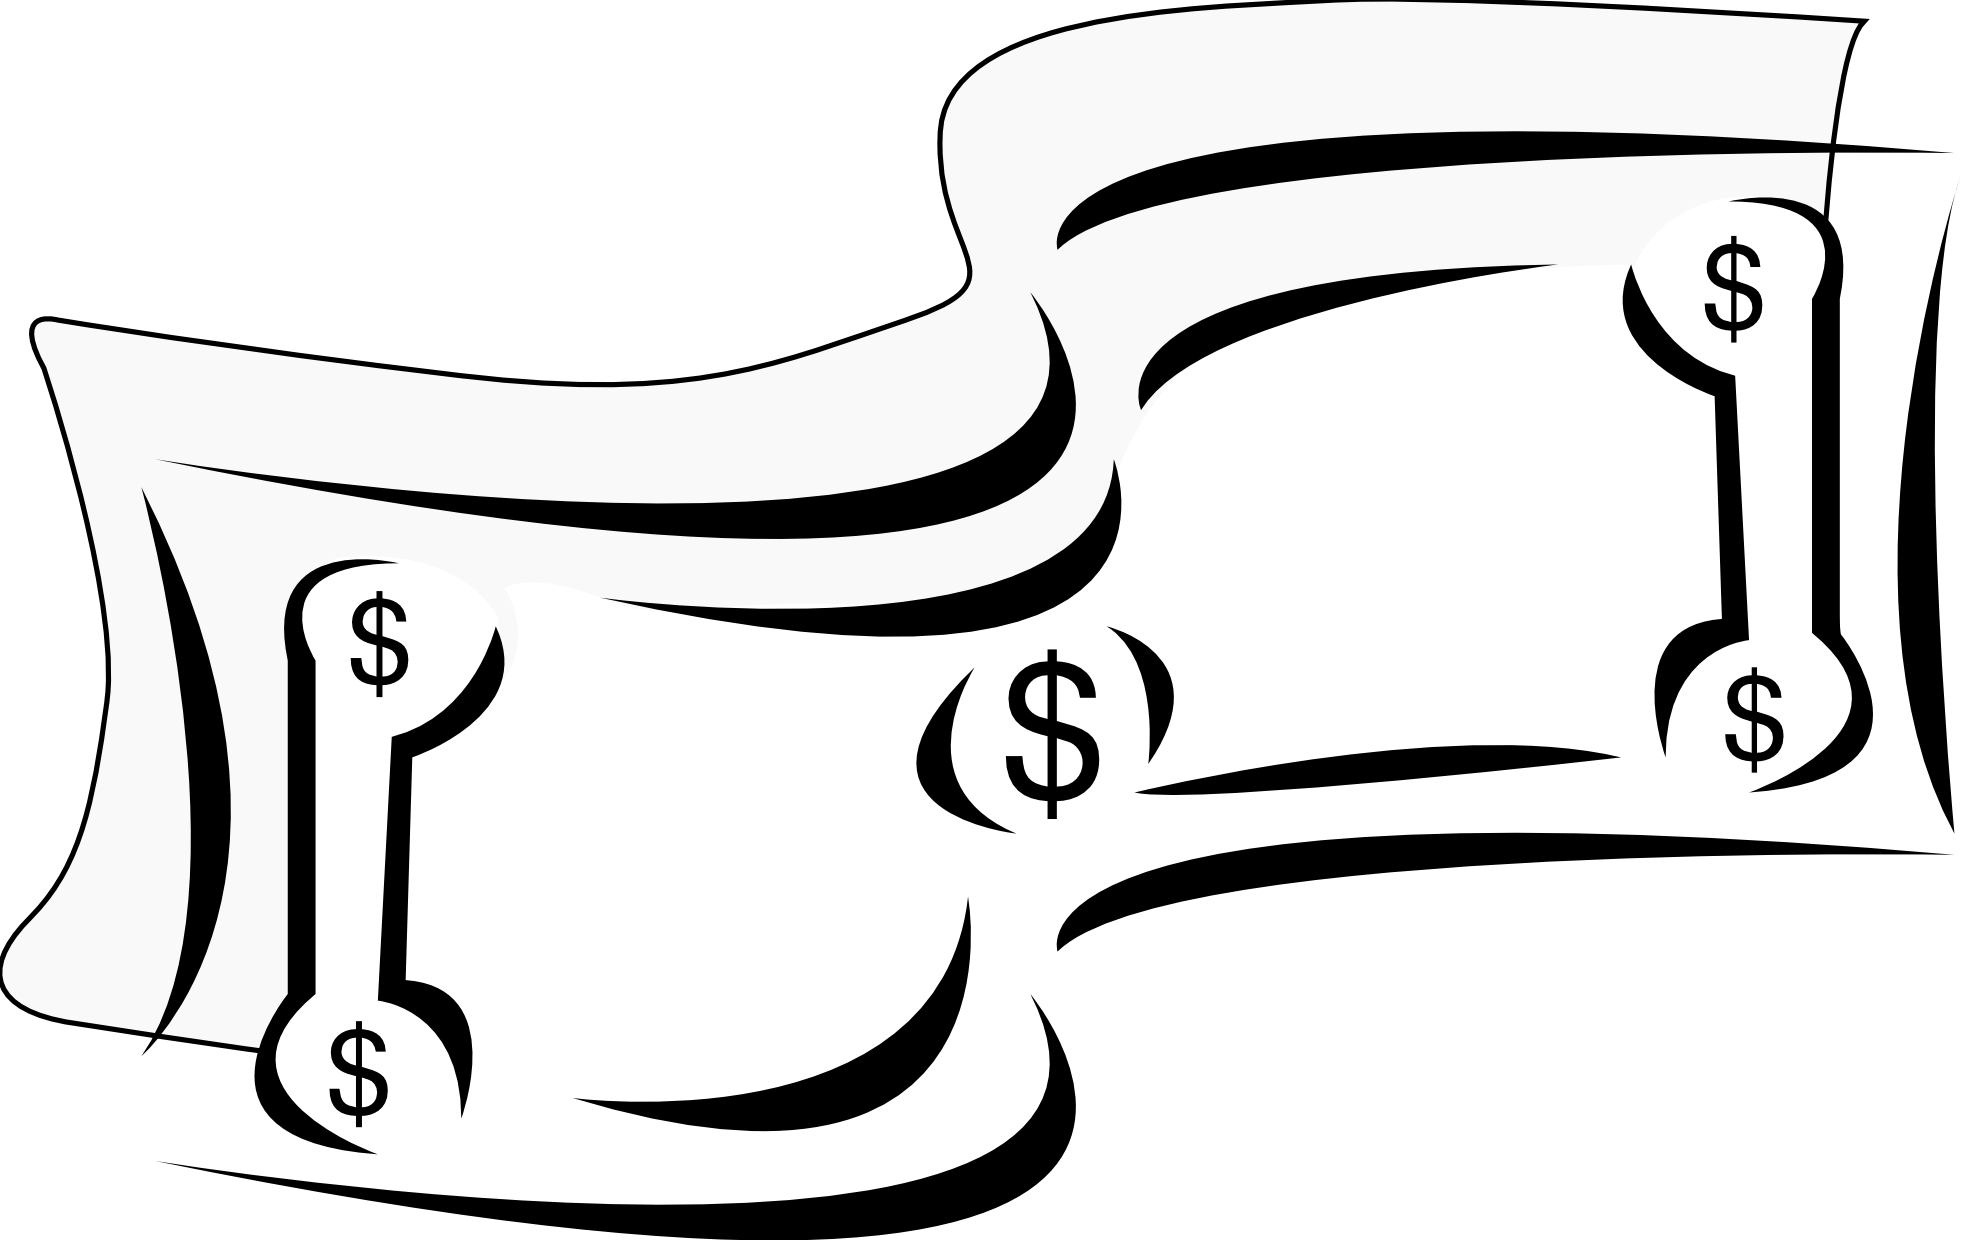 Money clipart earnings. Consistent making with grater